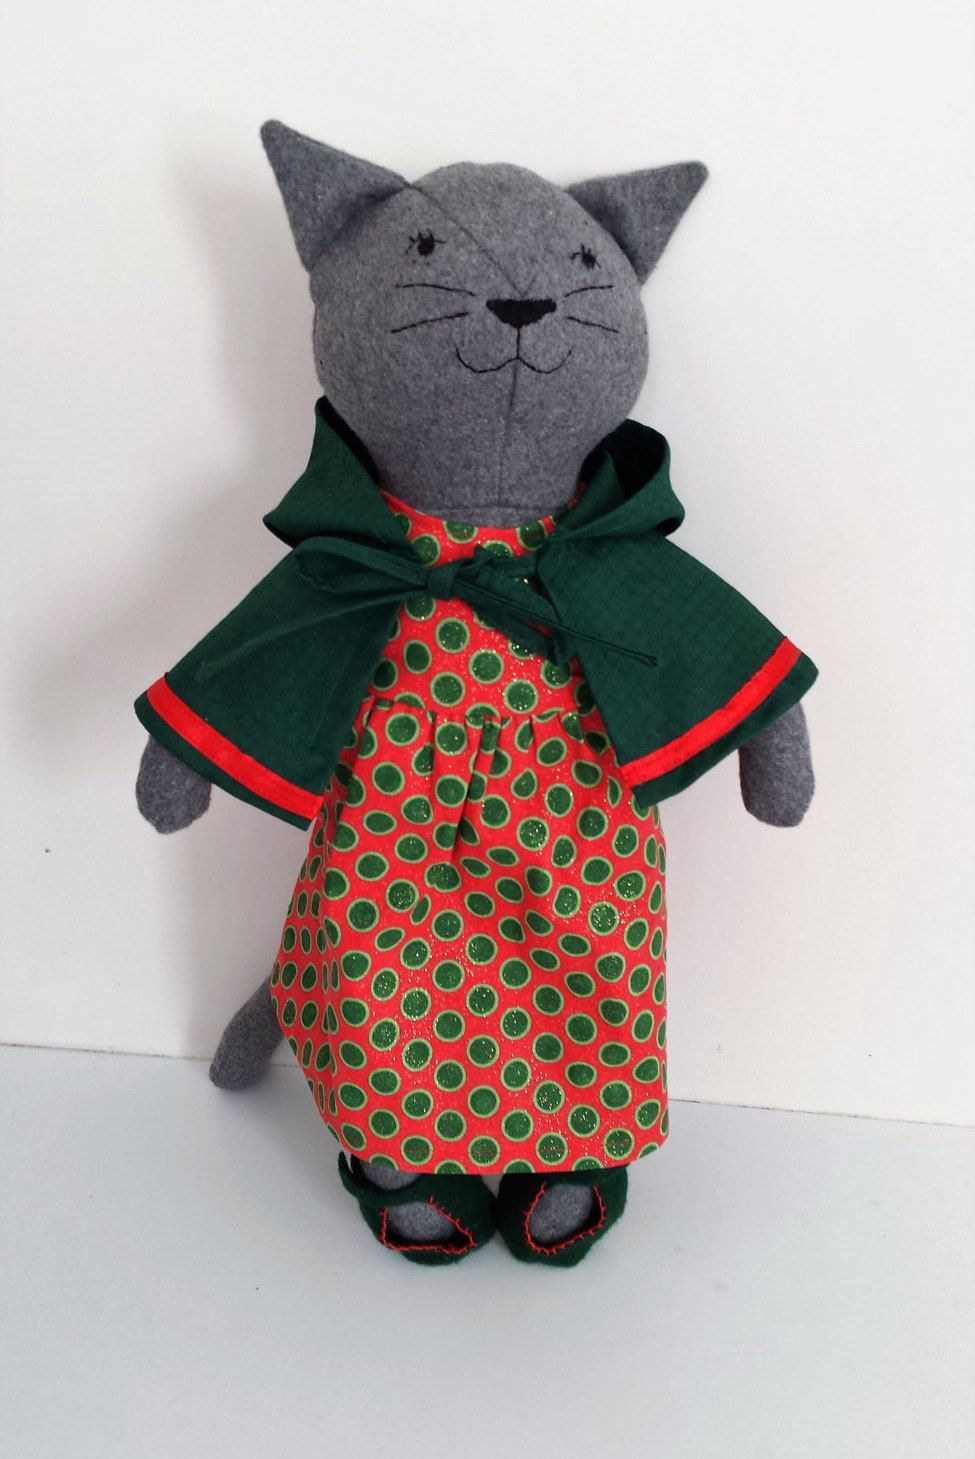 Rag Doll Cat in Christmas Clothes, Cat Doll, Stuffed Animal Cat ...